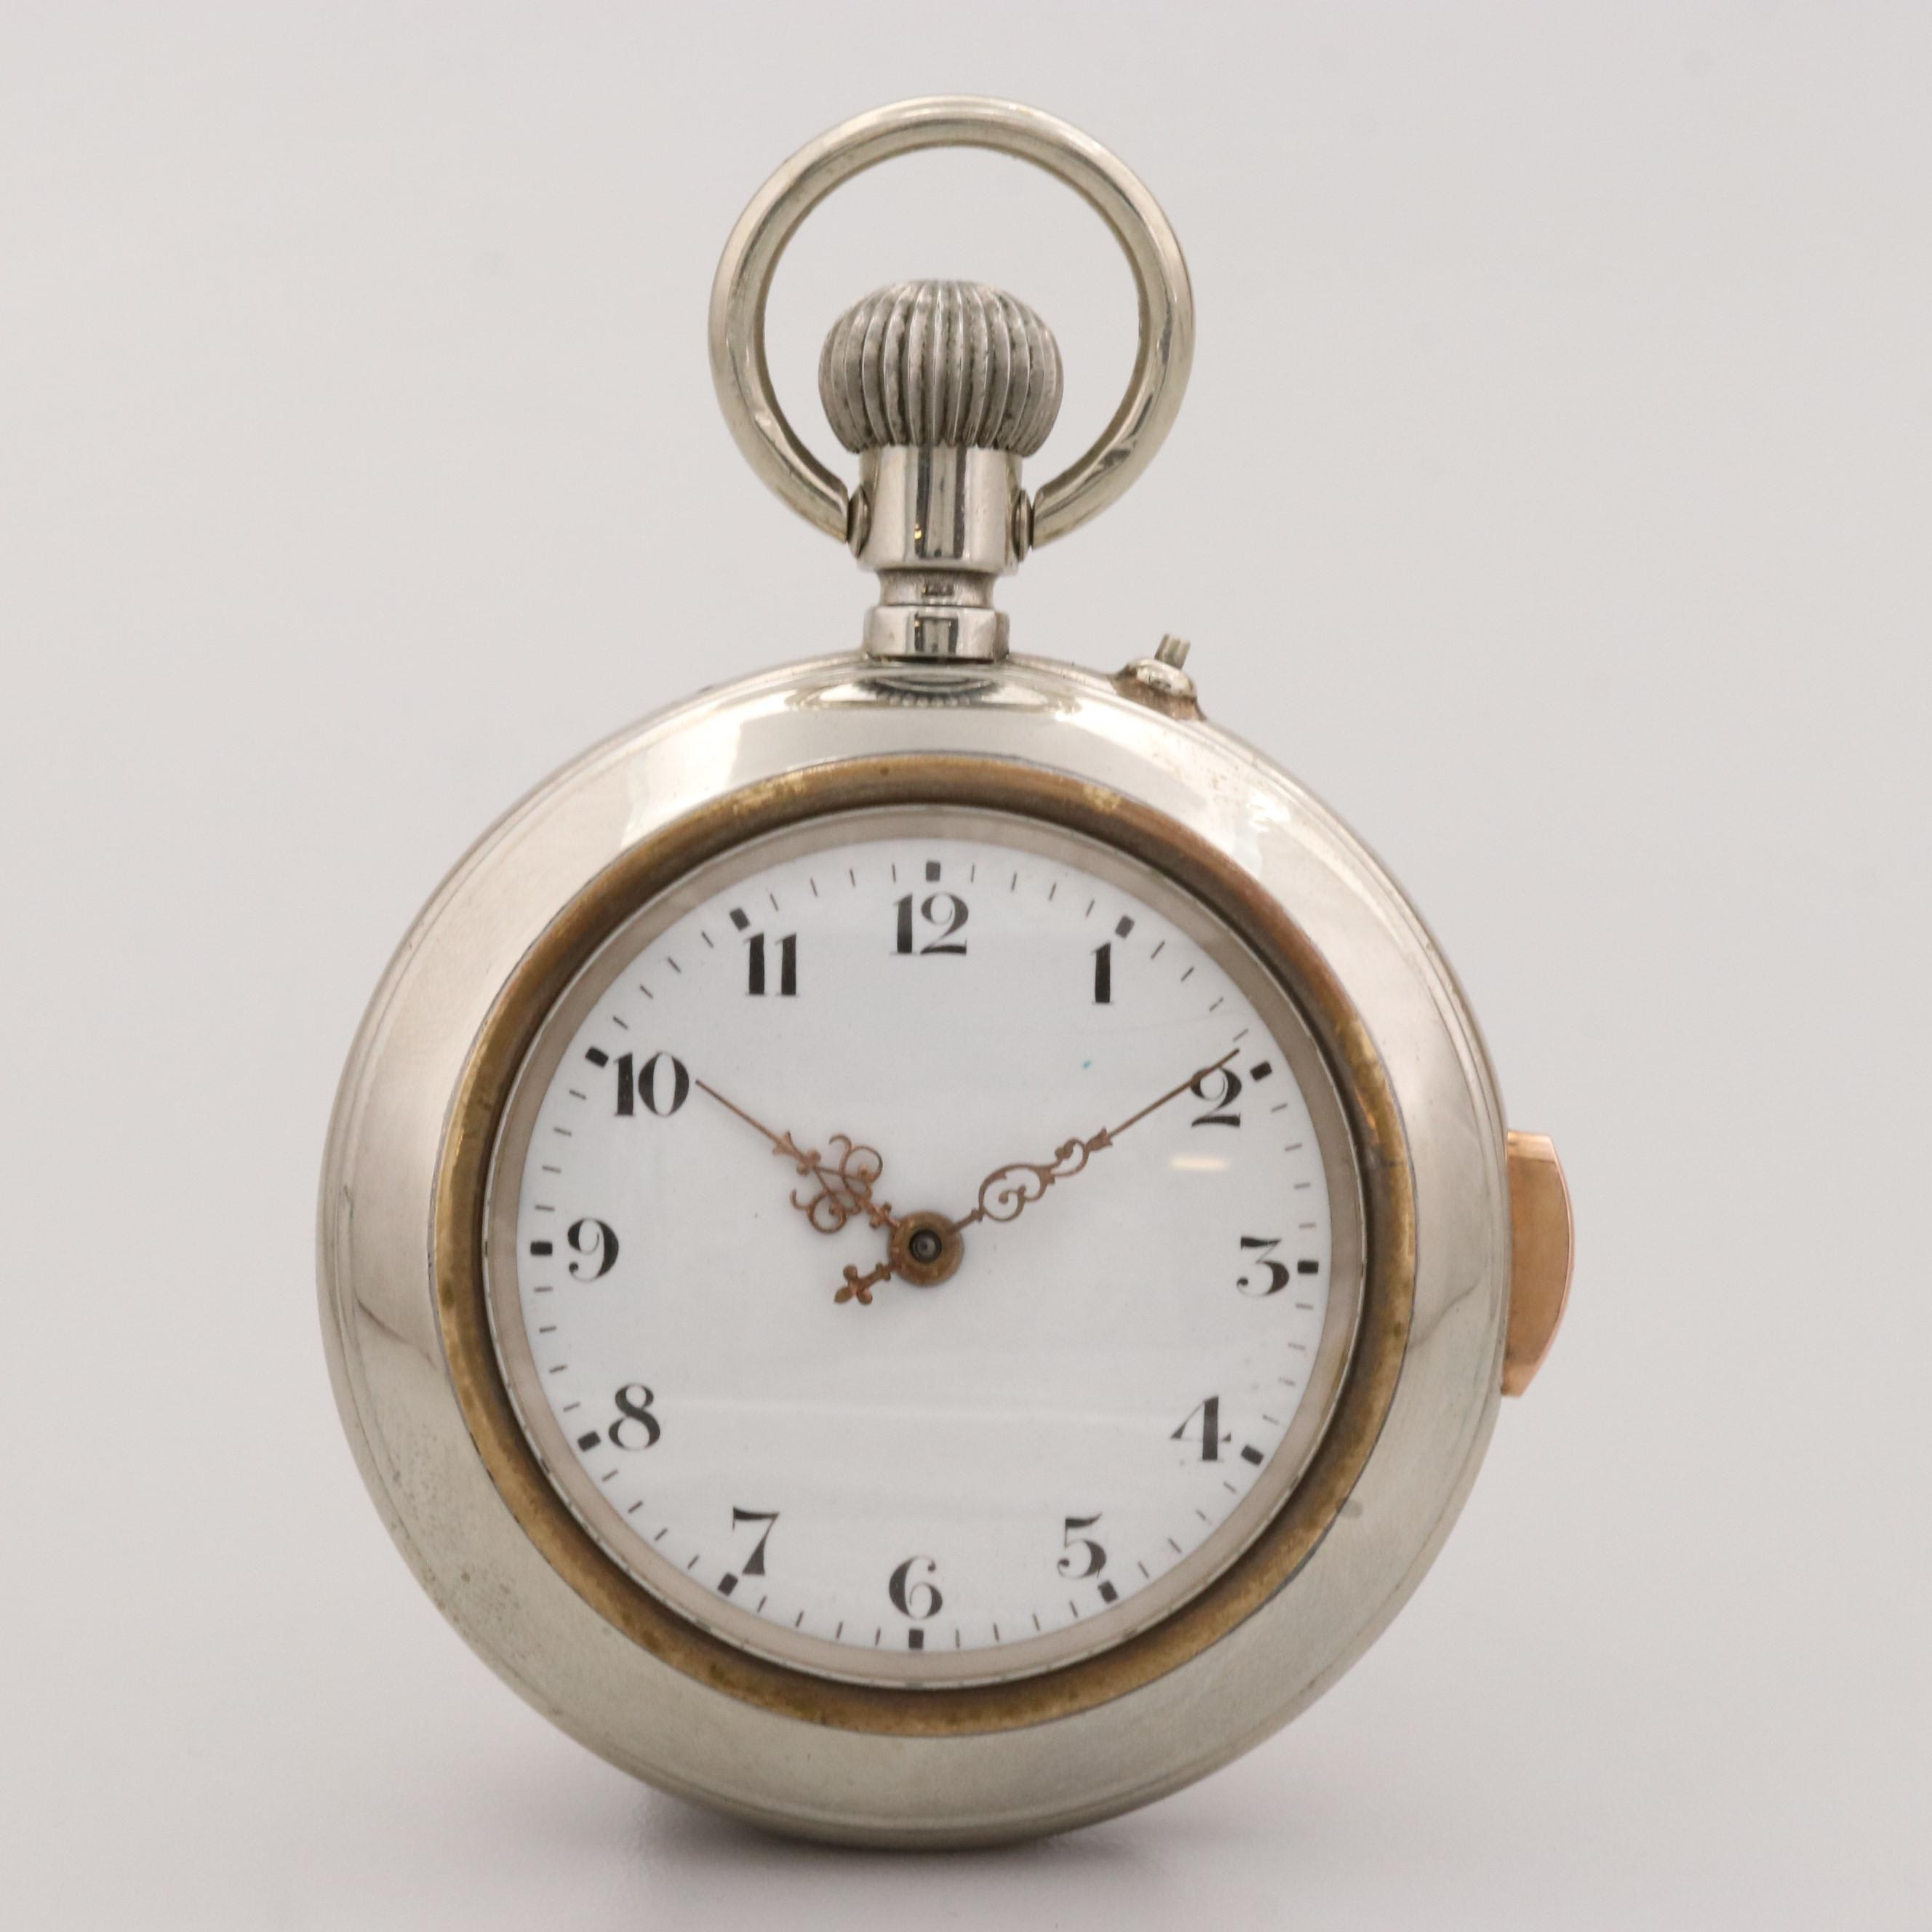 Vintage Quarter Hour Repeater Open Face Pocket Watch